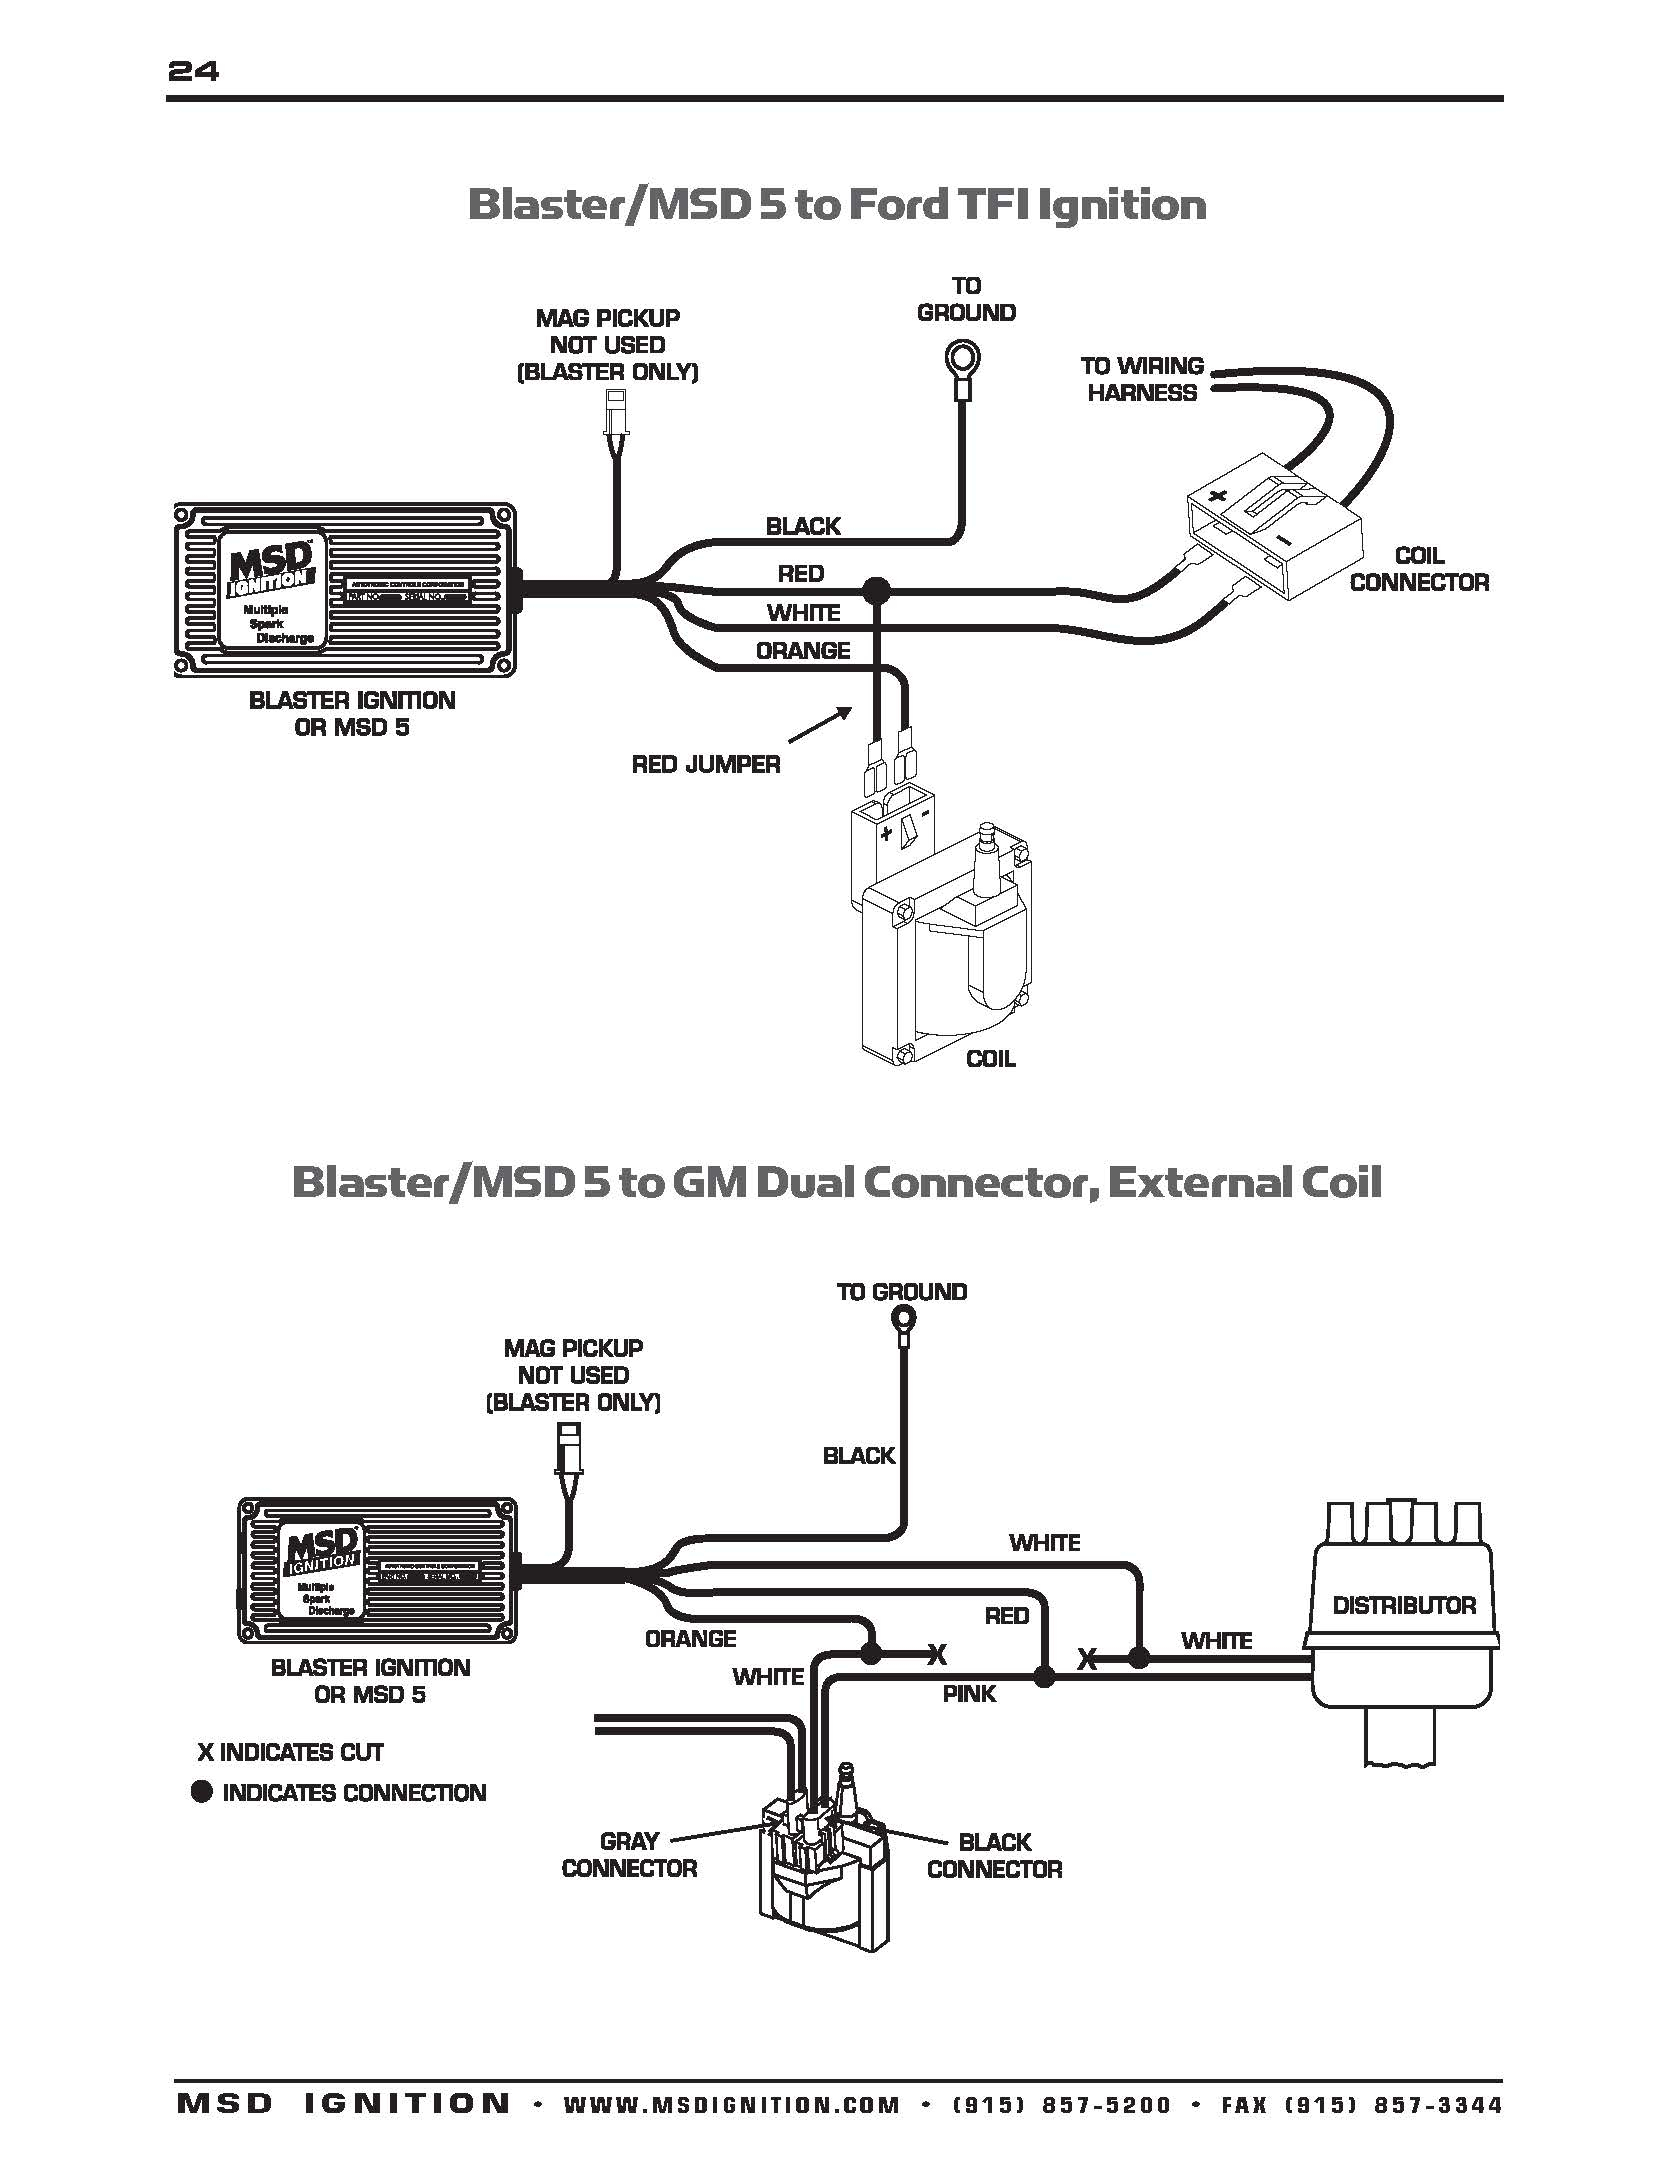 Msd Ignition Wiring Diagram - Wiring Diagrams Hubs - Msd Distributor Wiring Diagram